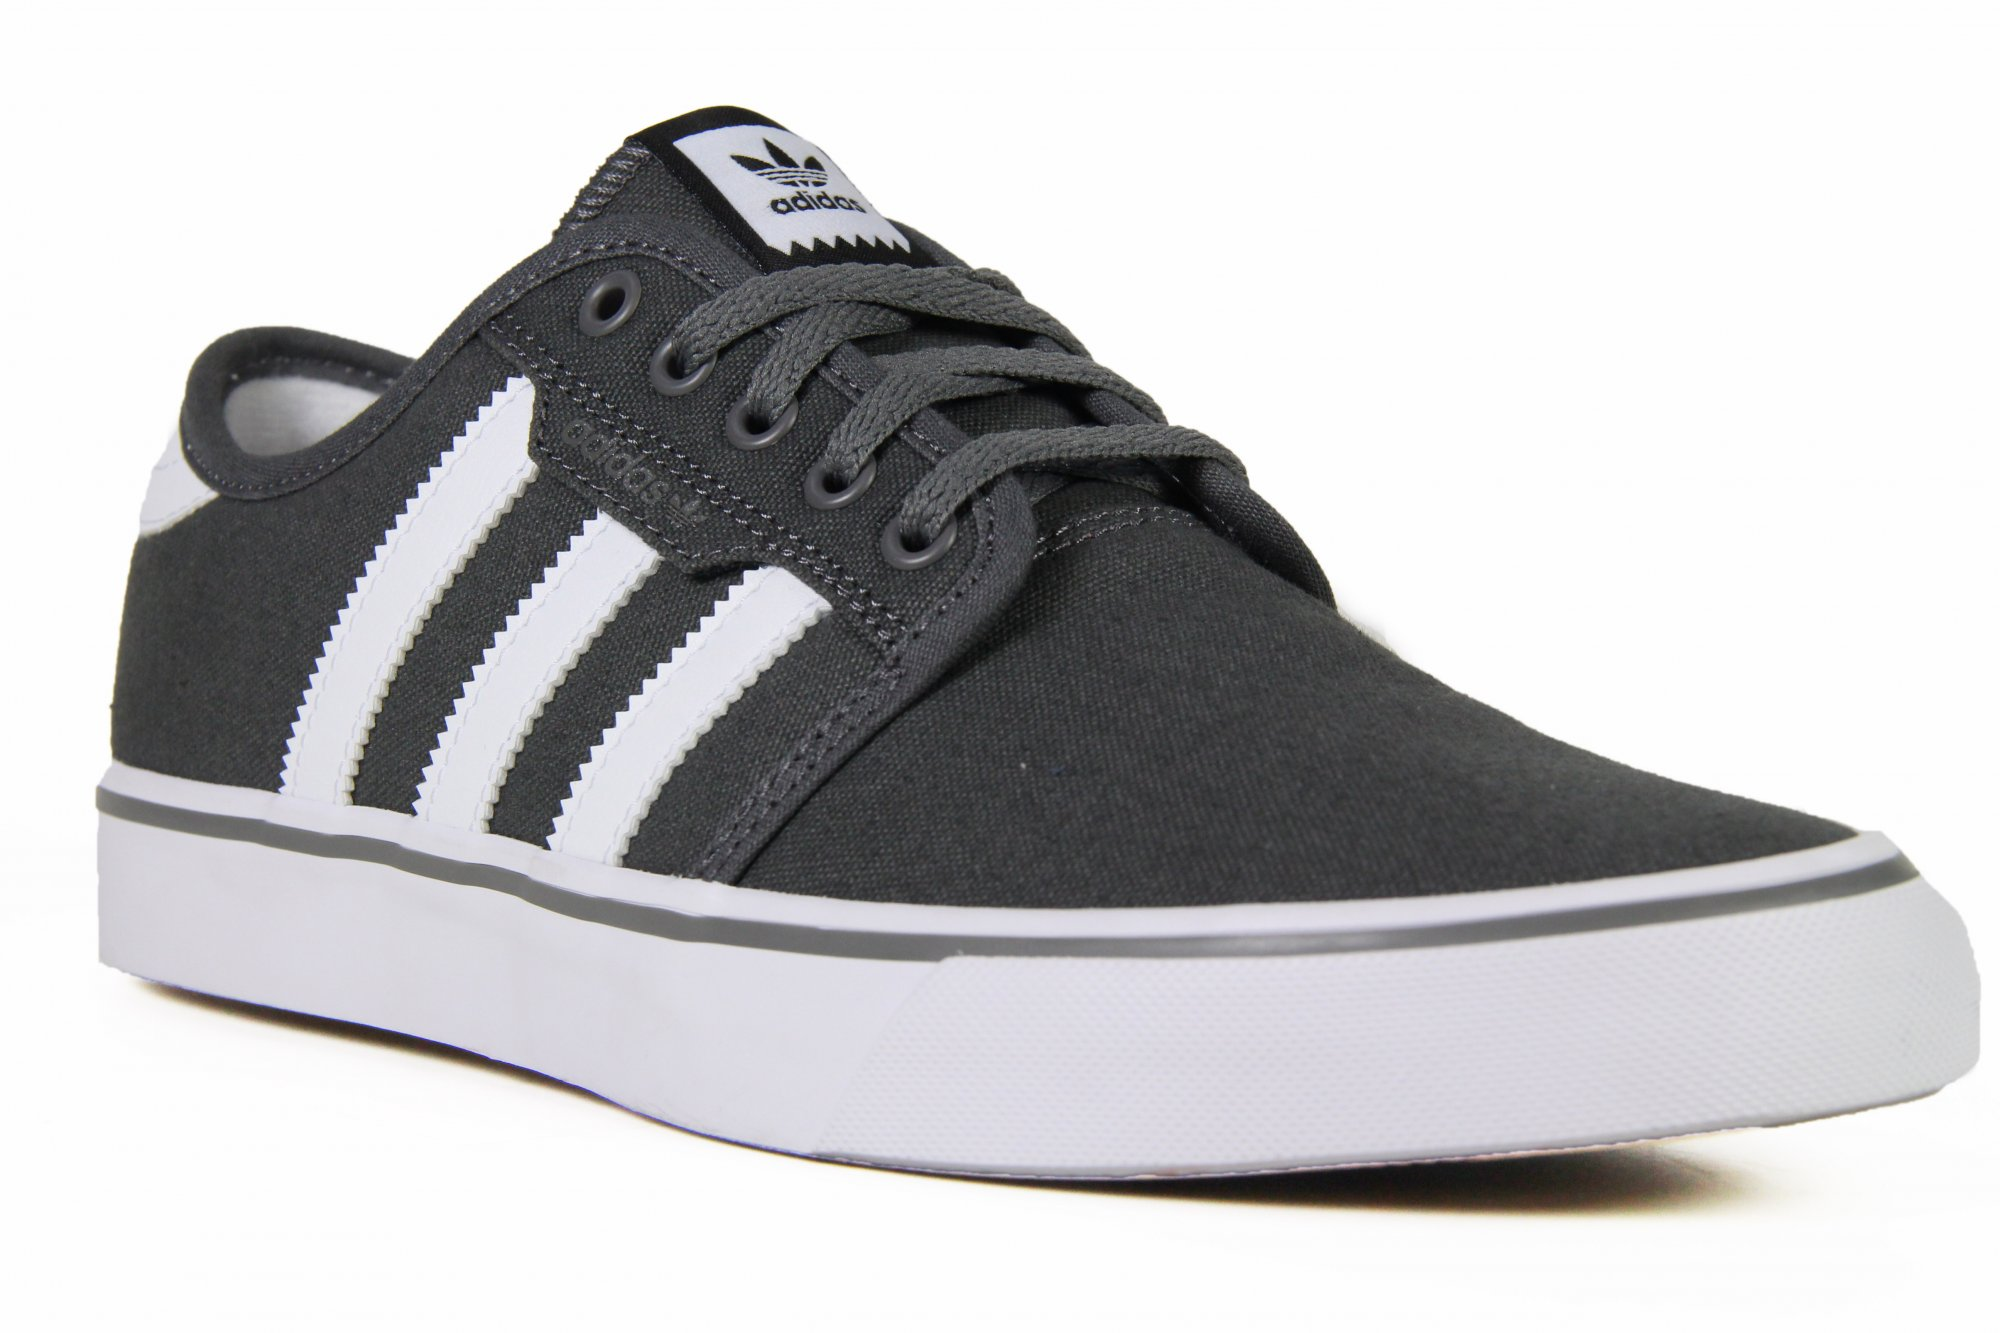 15e35dd3cf Tênis Feminino Adidas Seeley - Gray White - Session Store